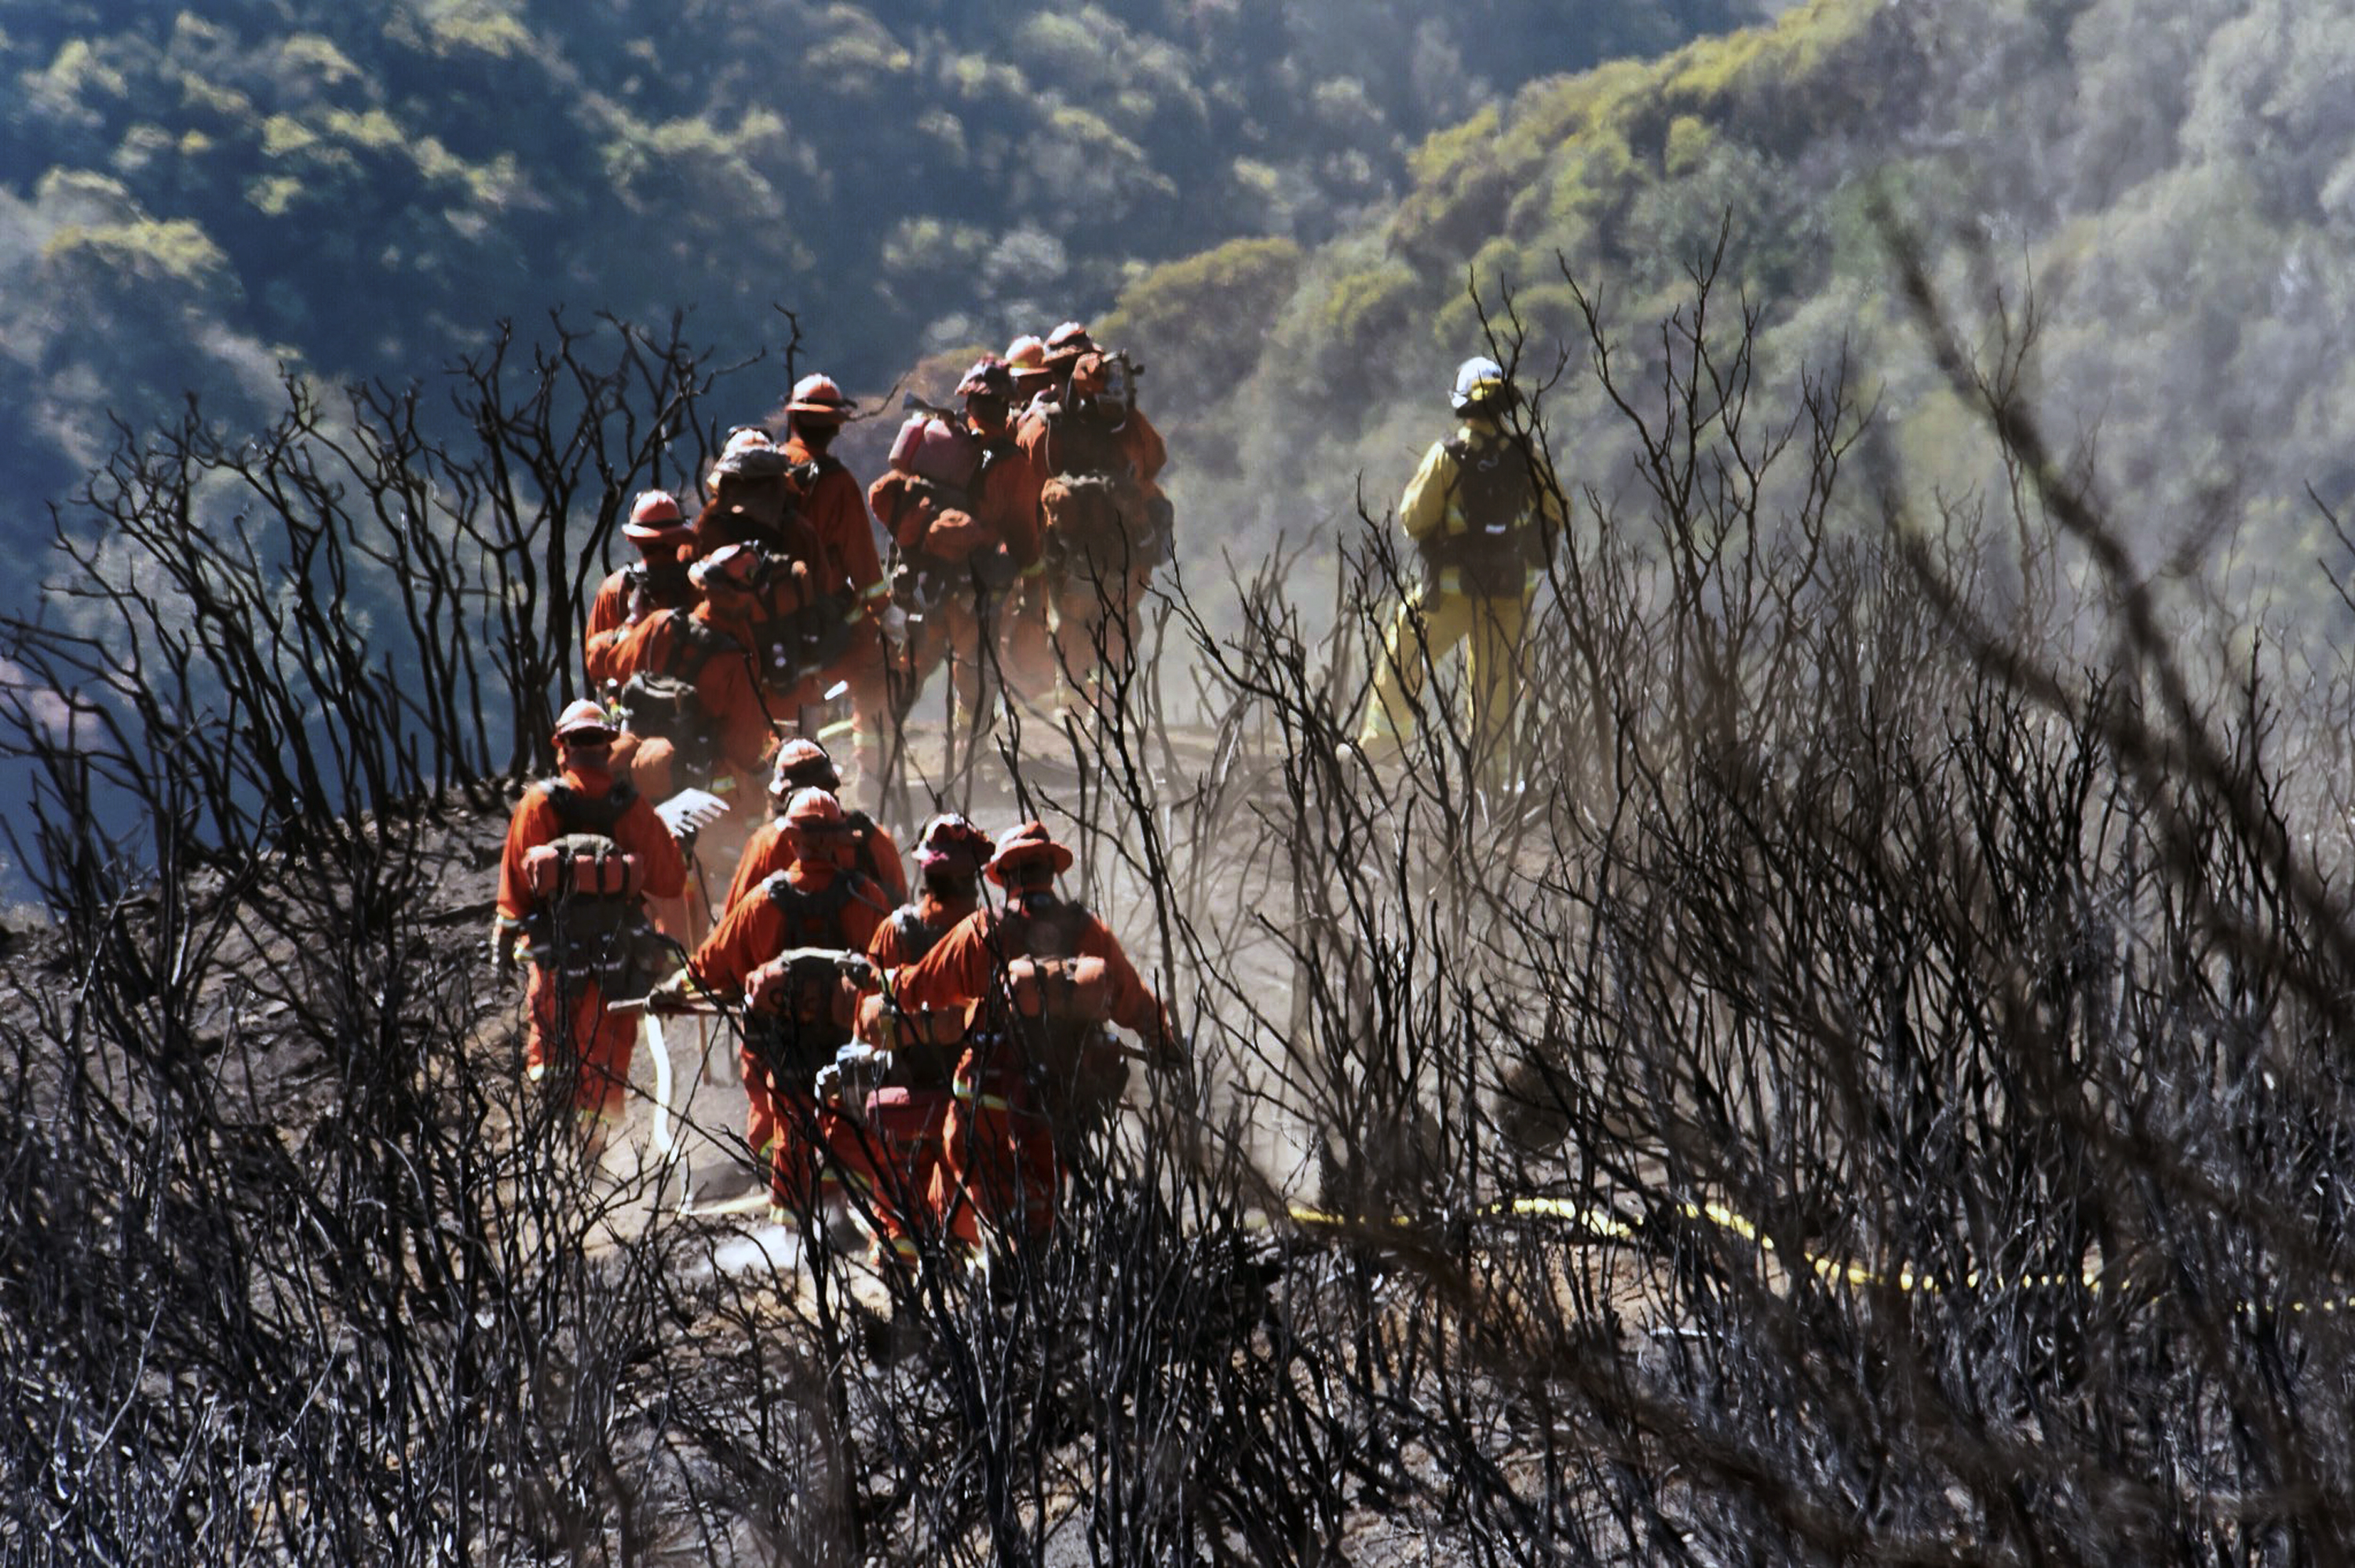 In this photo provided by the Santa Barbara County Fire Department, CAL FIRE Inmate Firefighting Hand Crew members hike through the charred landscape on their way to work east of Gibraltar Road above Montecito, Calif., Tuesday, Dec. 19, 2017. Officials estimate that the fire will grow to become the biggest in California history before full containment, expected by Jan. 7. (Mike Eliason/Santa Barbara County Fire Department via AP)